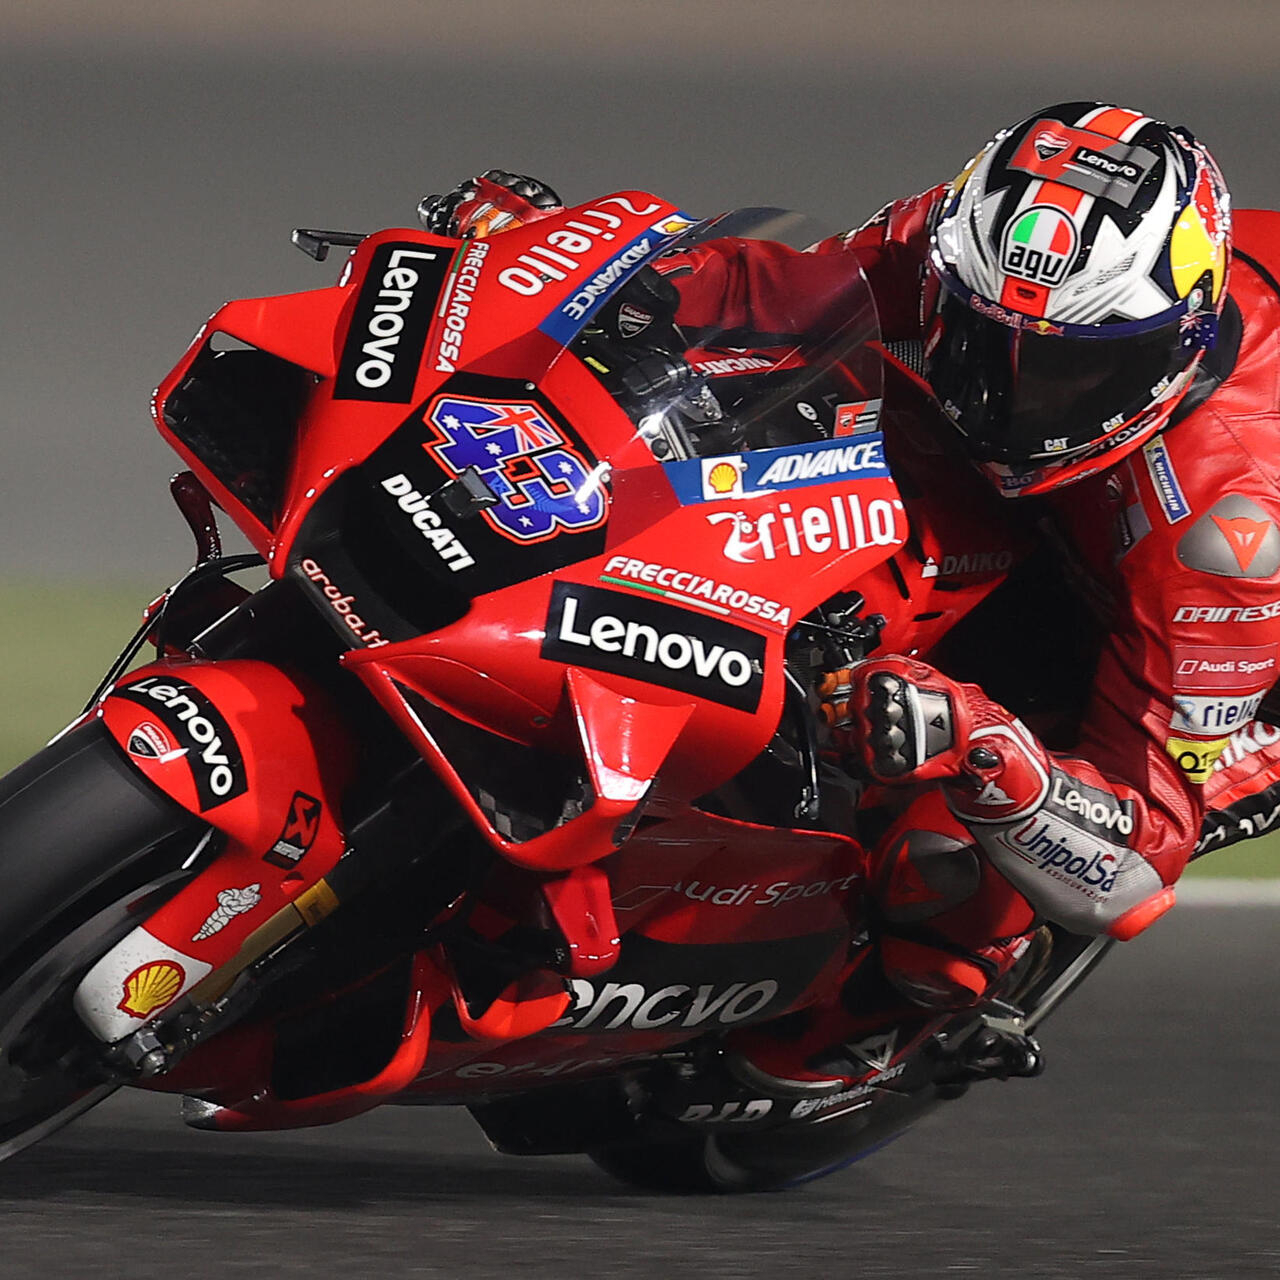 Miller Leads Ducati Triple Charge In Doha Motogp Practice France 24